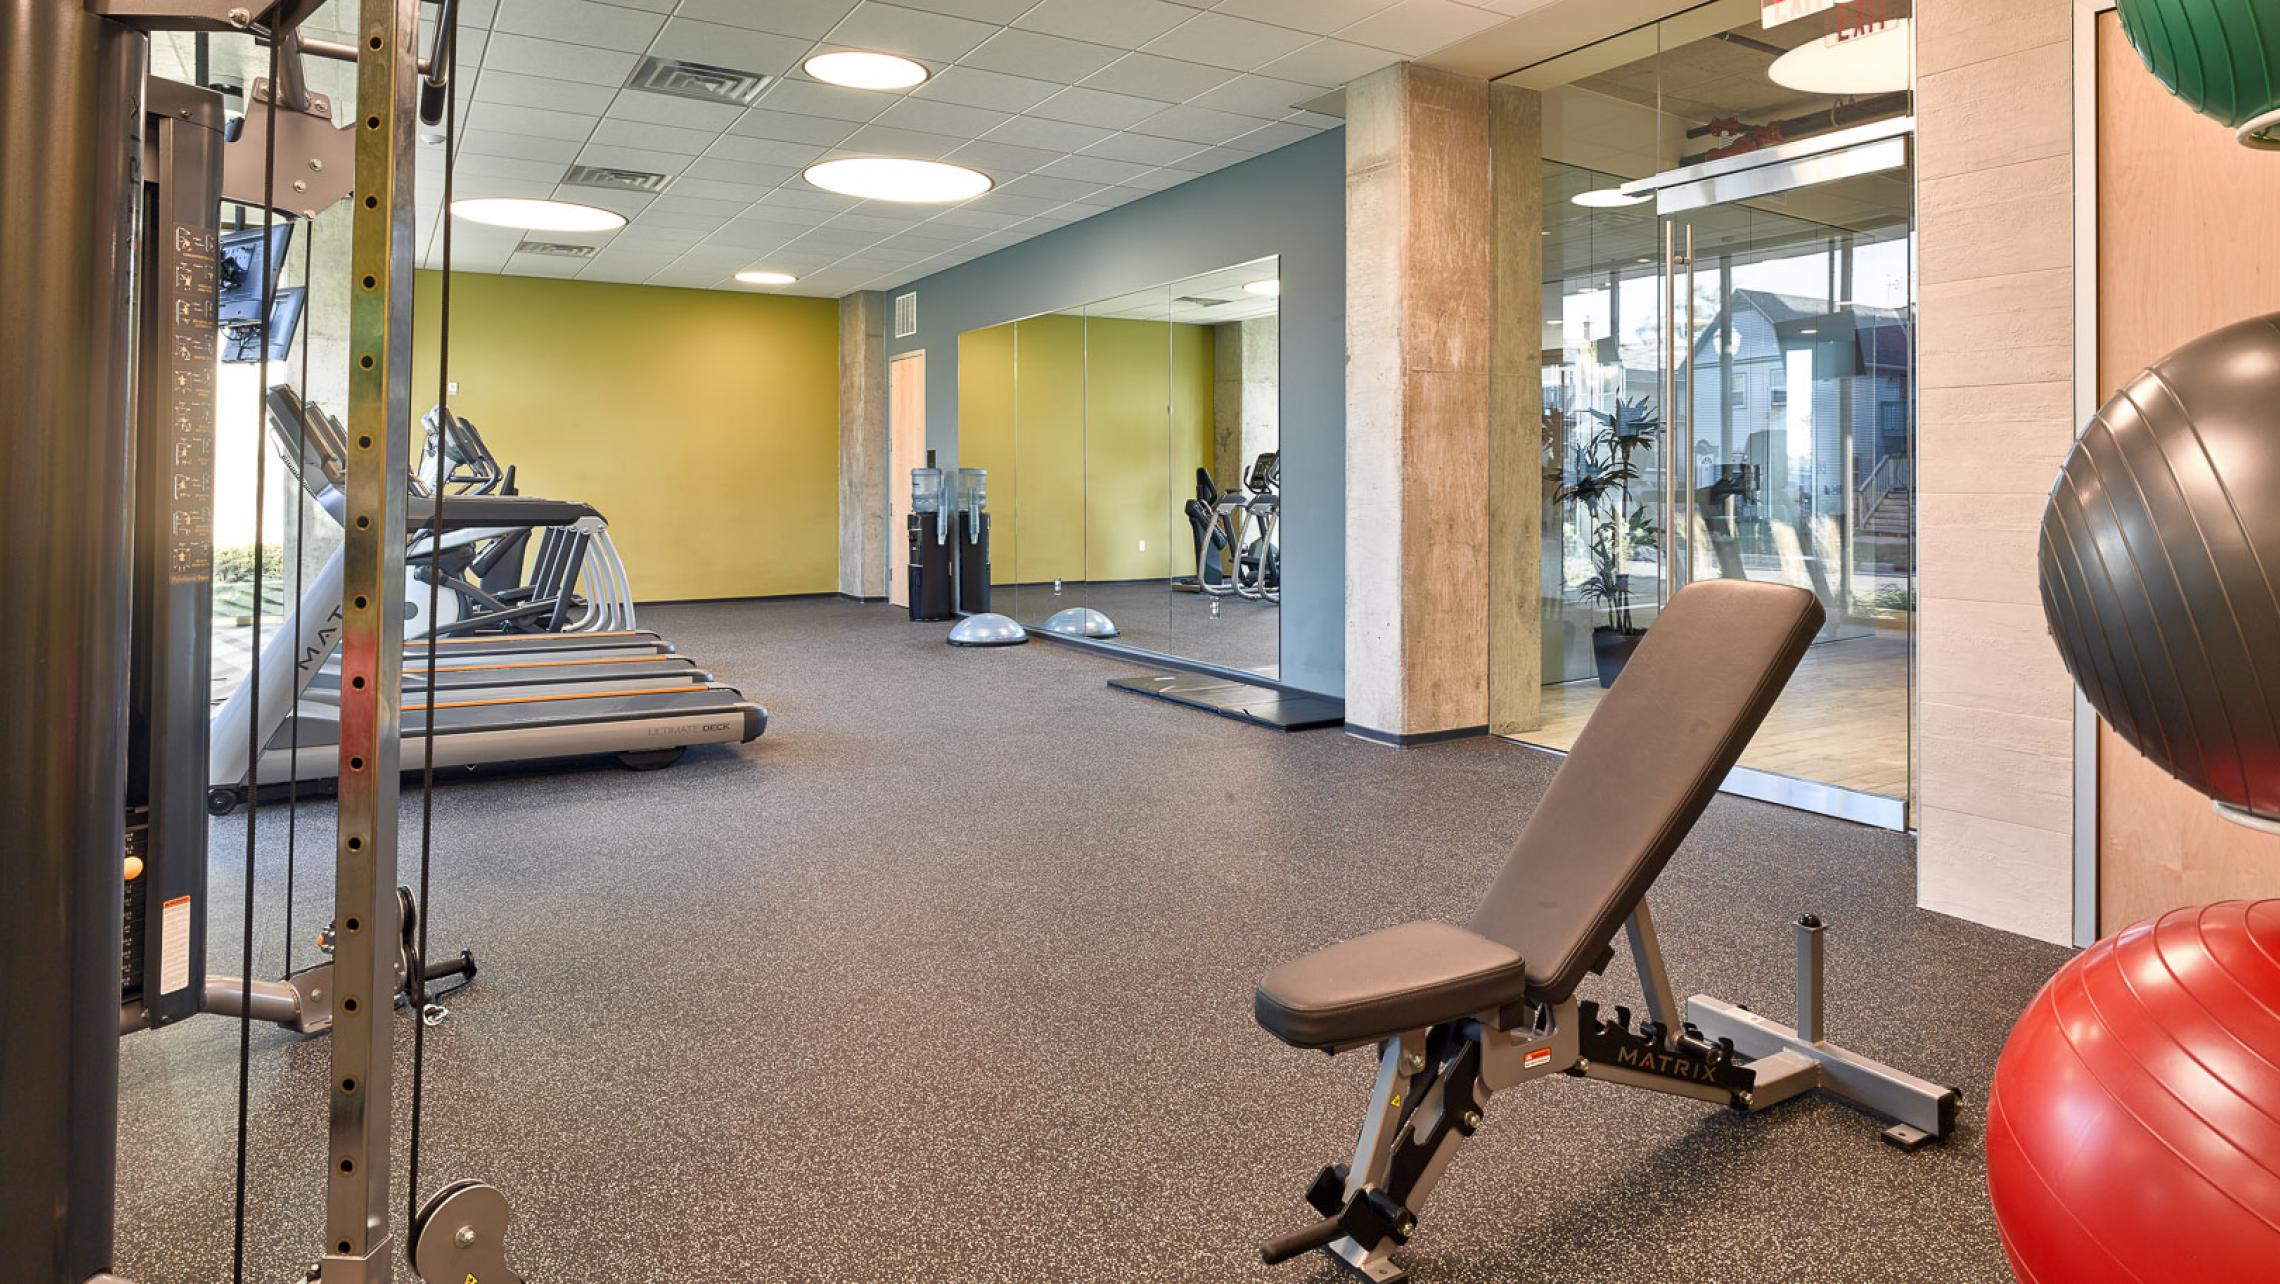 ULI Nine Line Apartments Gym with Professional Equipment